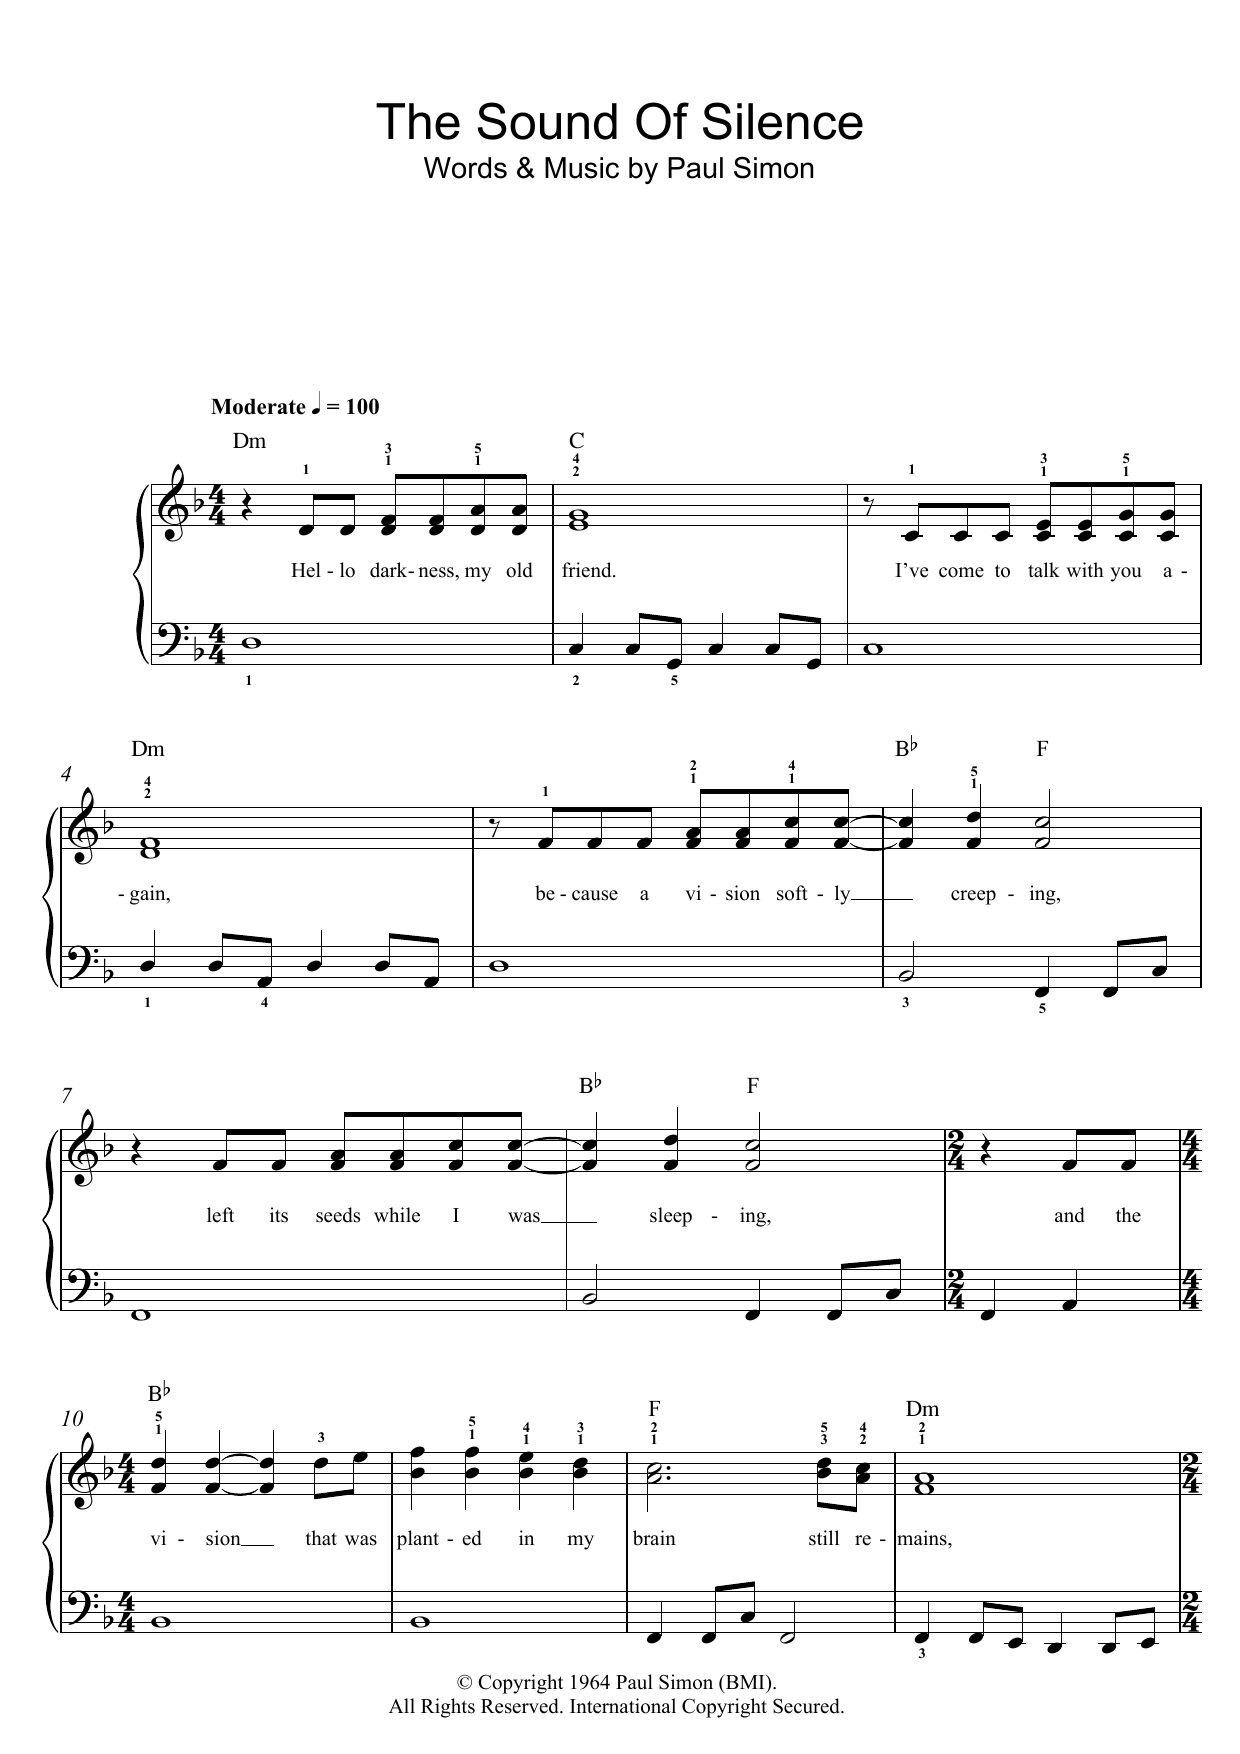 Sound of silence guitar chords gallery guitar chords examples the sound of silence sheet music by simon garfunkel beginner simon garfunkel the sound of silence hexwebz Image collections